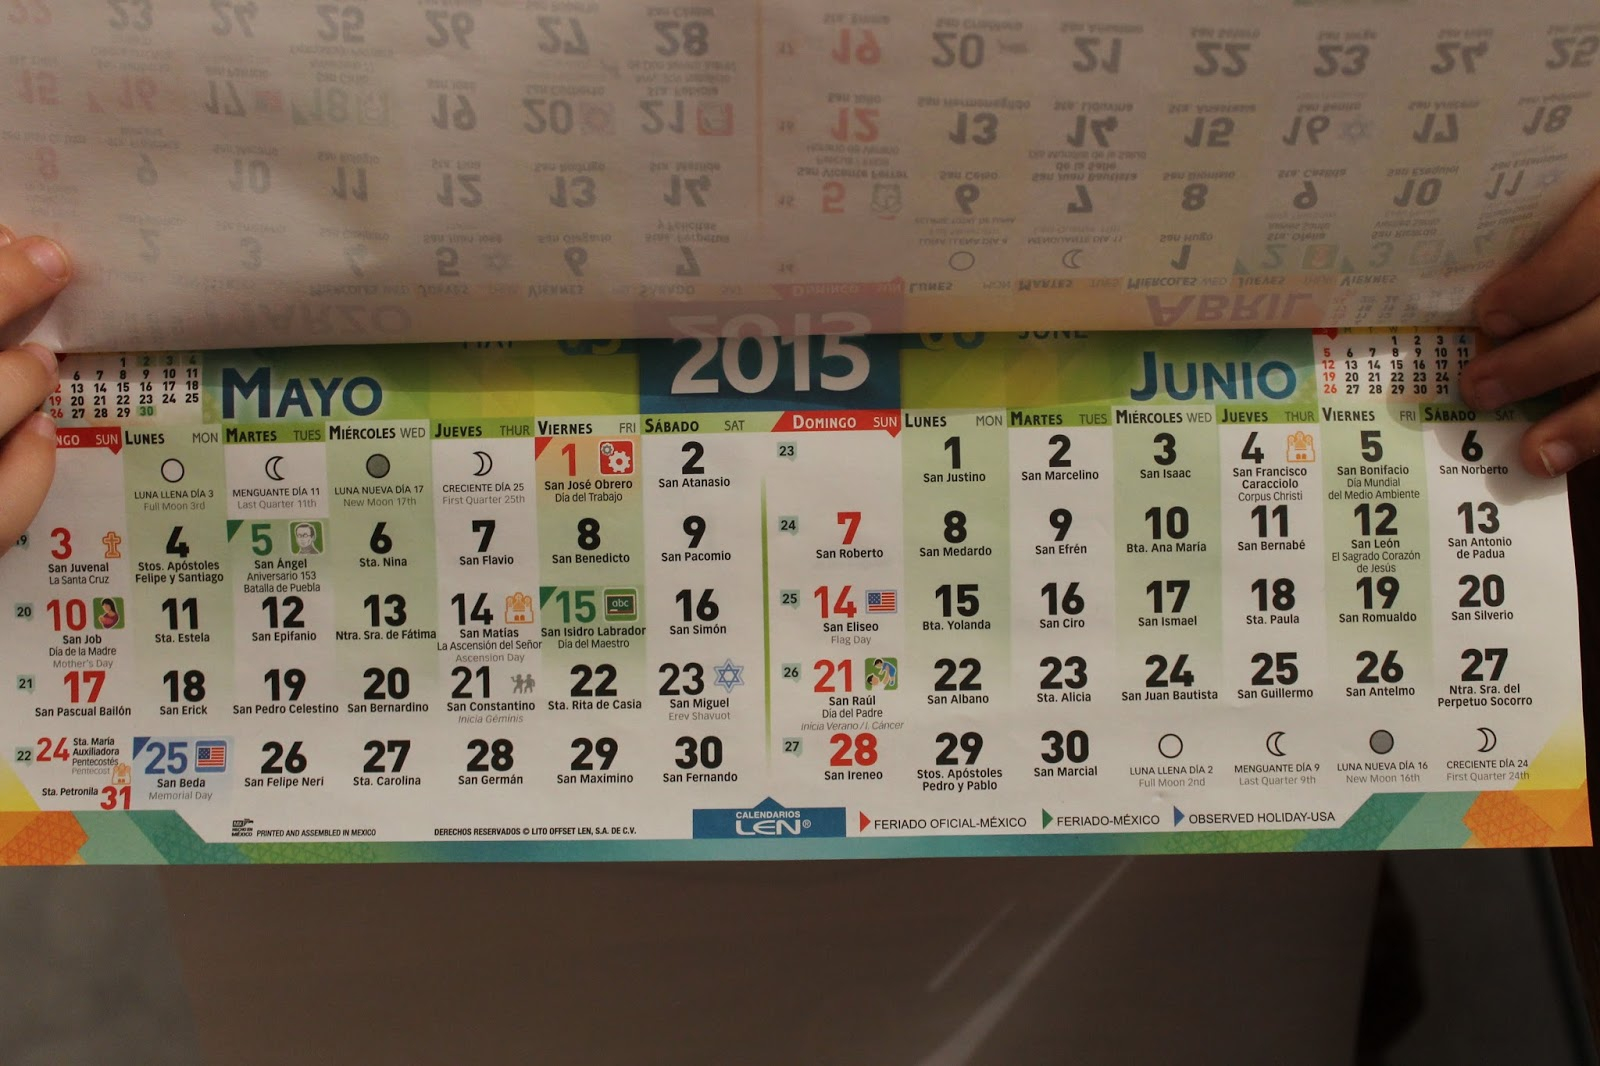 Loving The Land Of The Flour Tortilla: Octubre 2015 within Mexican Calendar With Saint Names